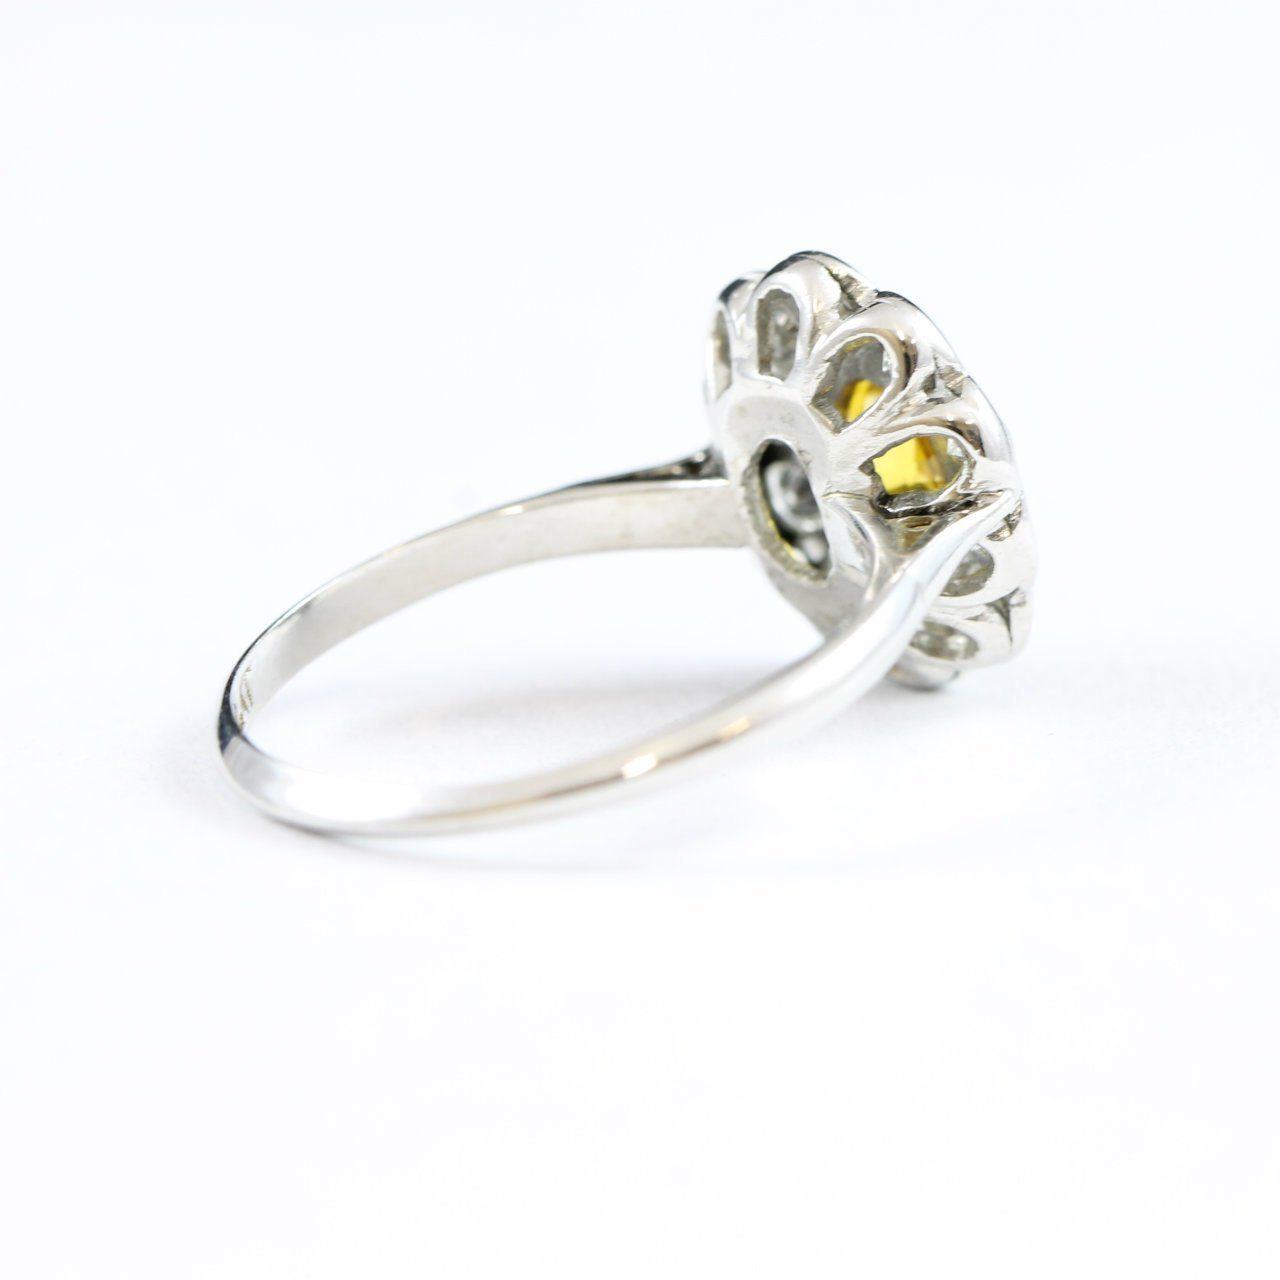 a1760e899b19c Yellow sapphire and diamond daisy cluster ring in platinum antique  rennovated to new